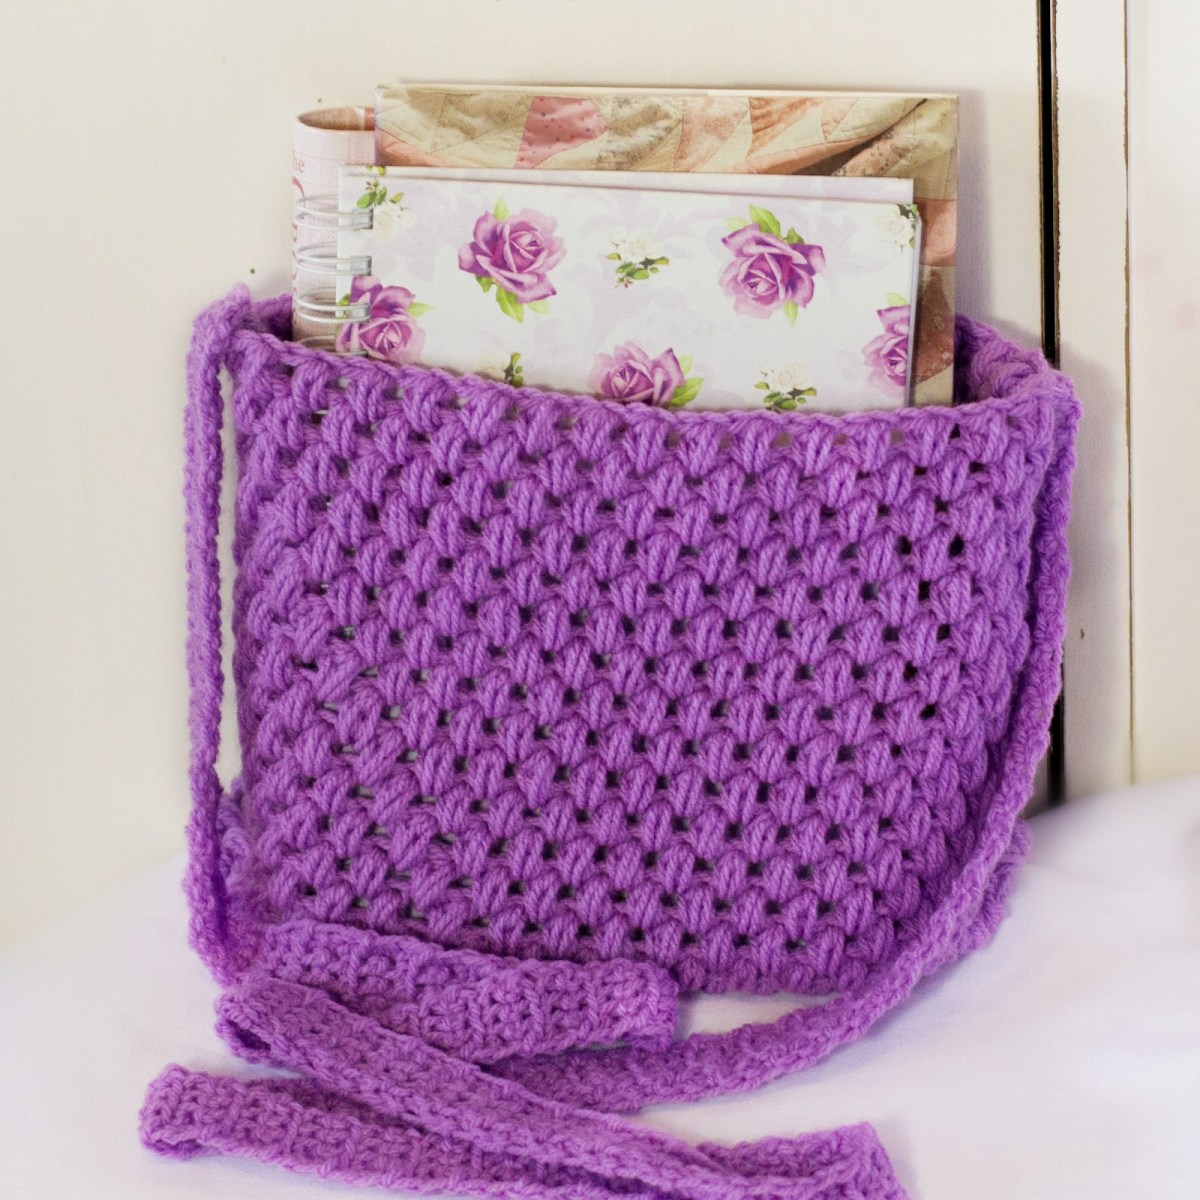 Tote Bag Patterns and Ideas that You Will Adore Small Tote Bags Small Tote Bag Crochet Pattern